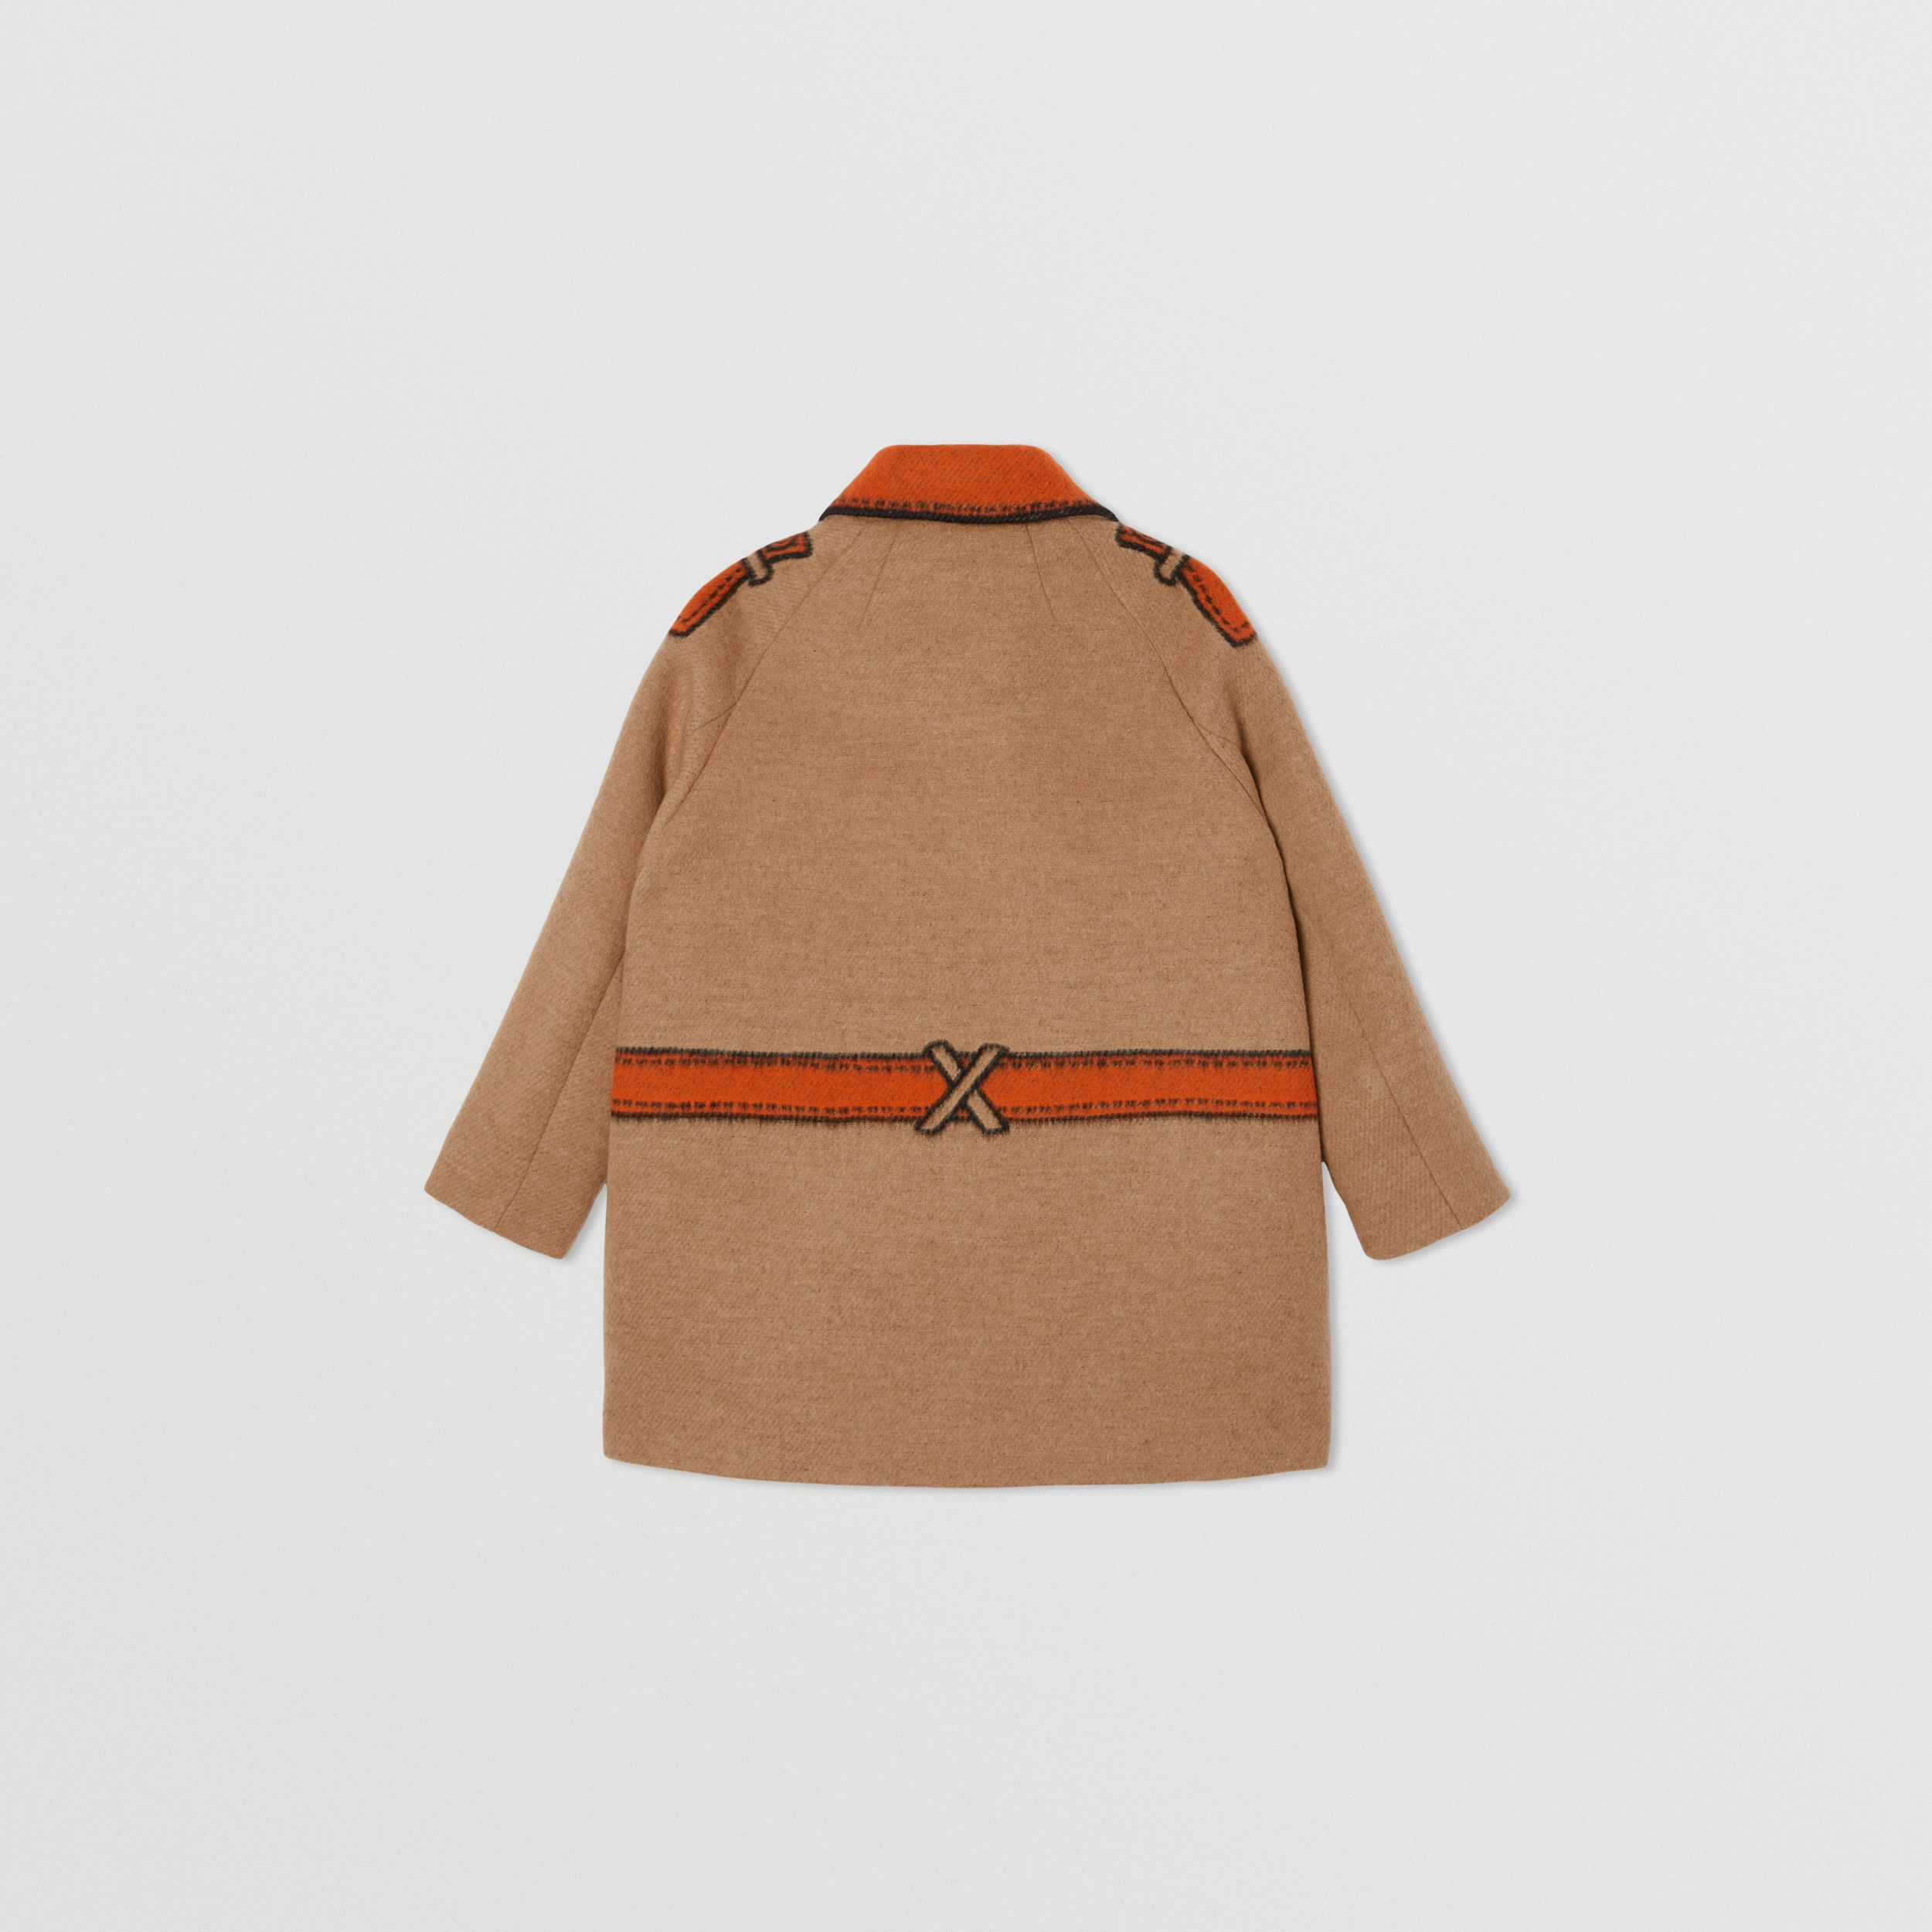 Trompe L'Oeil Wool Jacquard Coat in Camel | Burberry - 4